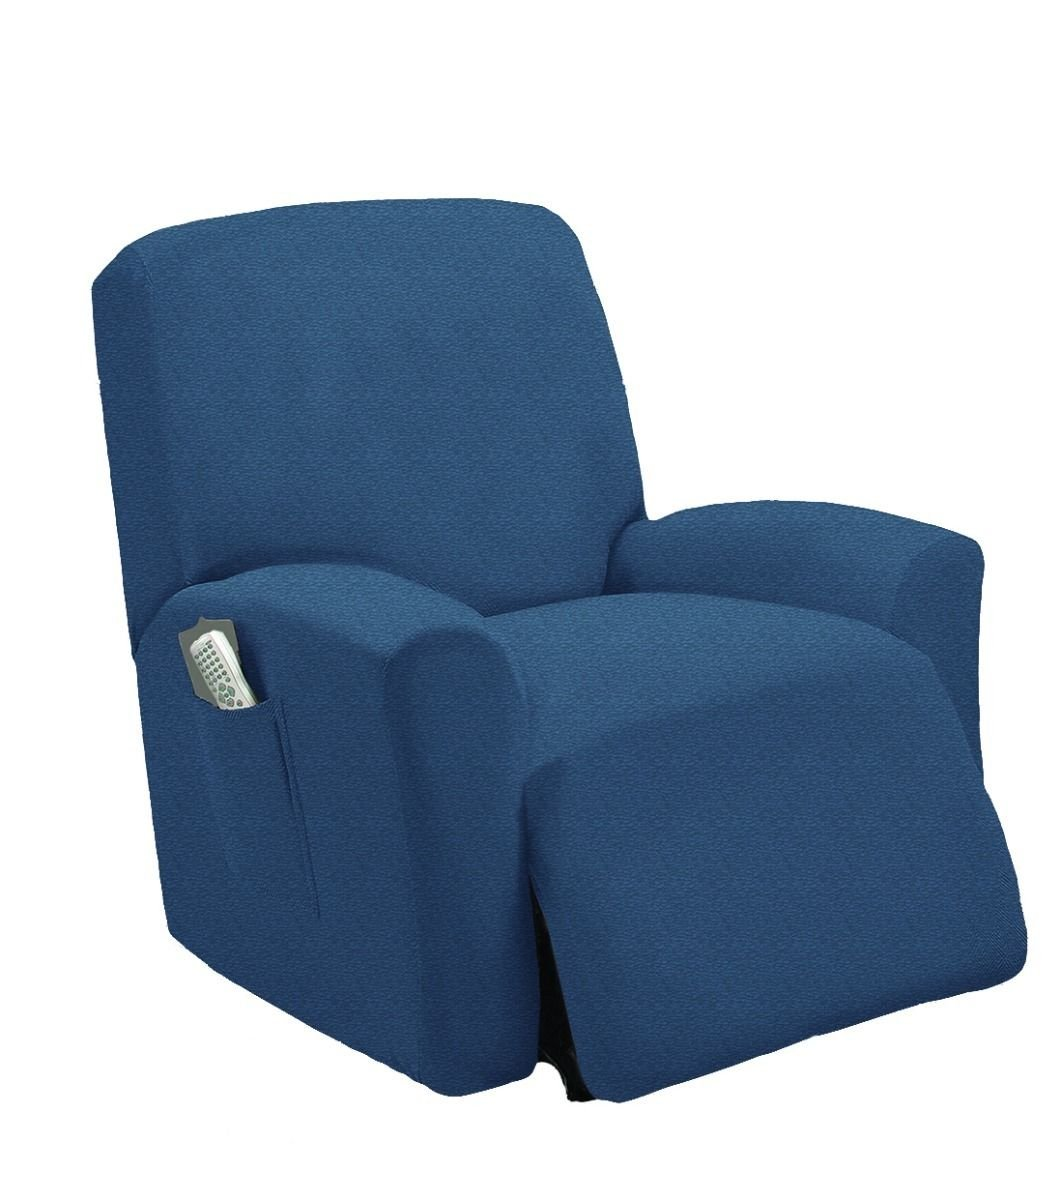 Elegant Home One Piece Stretch Recliner Chair Cover Furniture Slipcovers with Remote Pocket Fit Most Recliner Chairs (Blue)